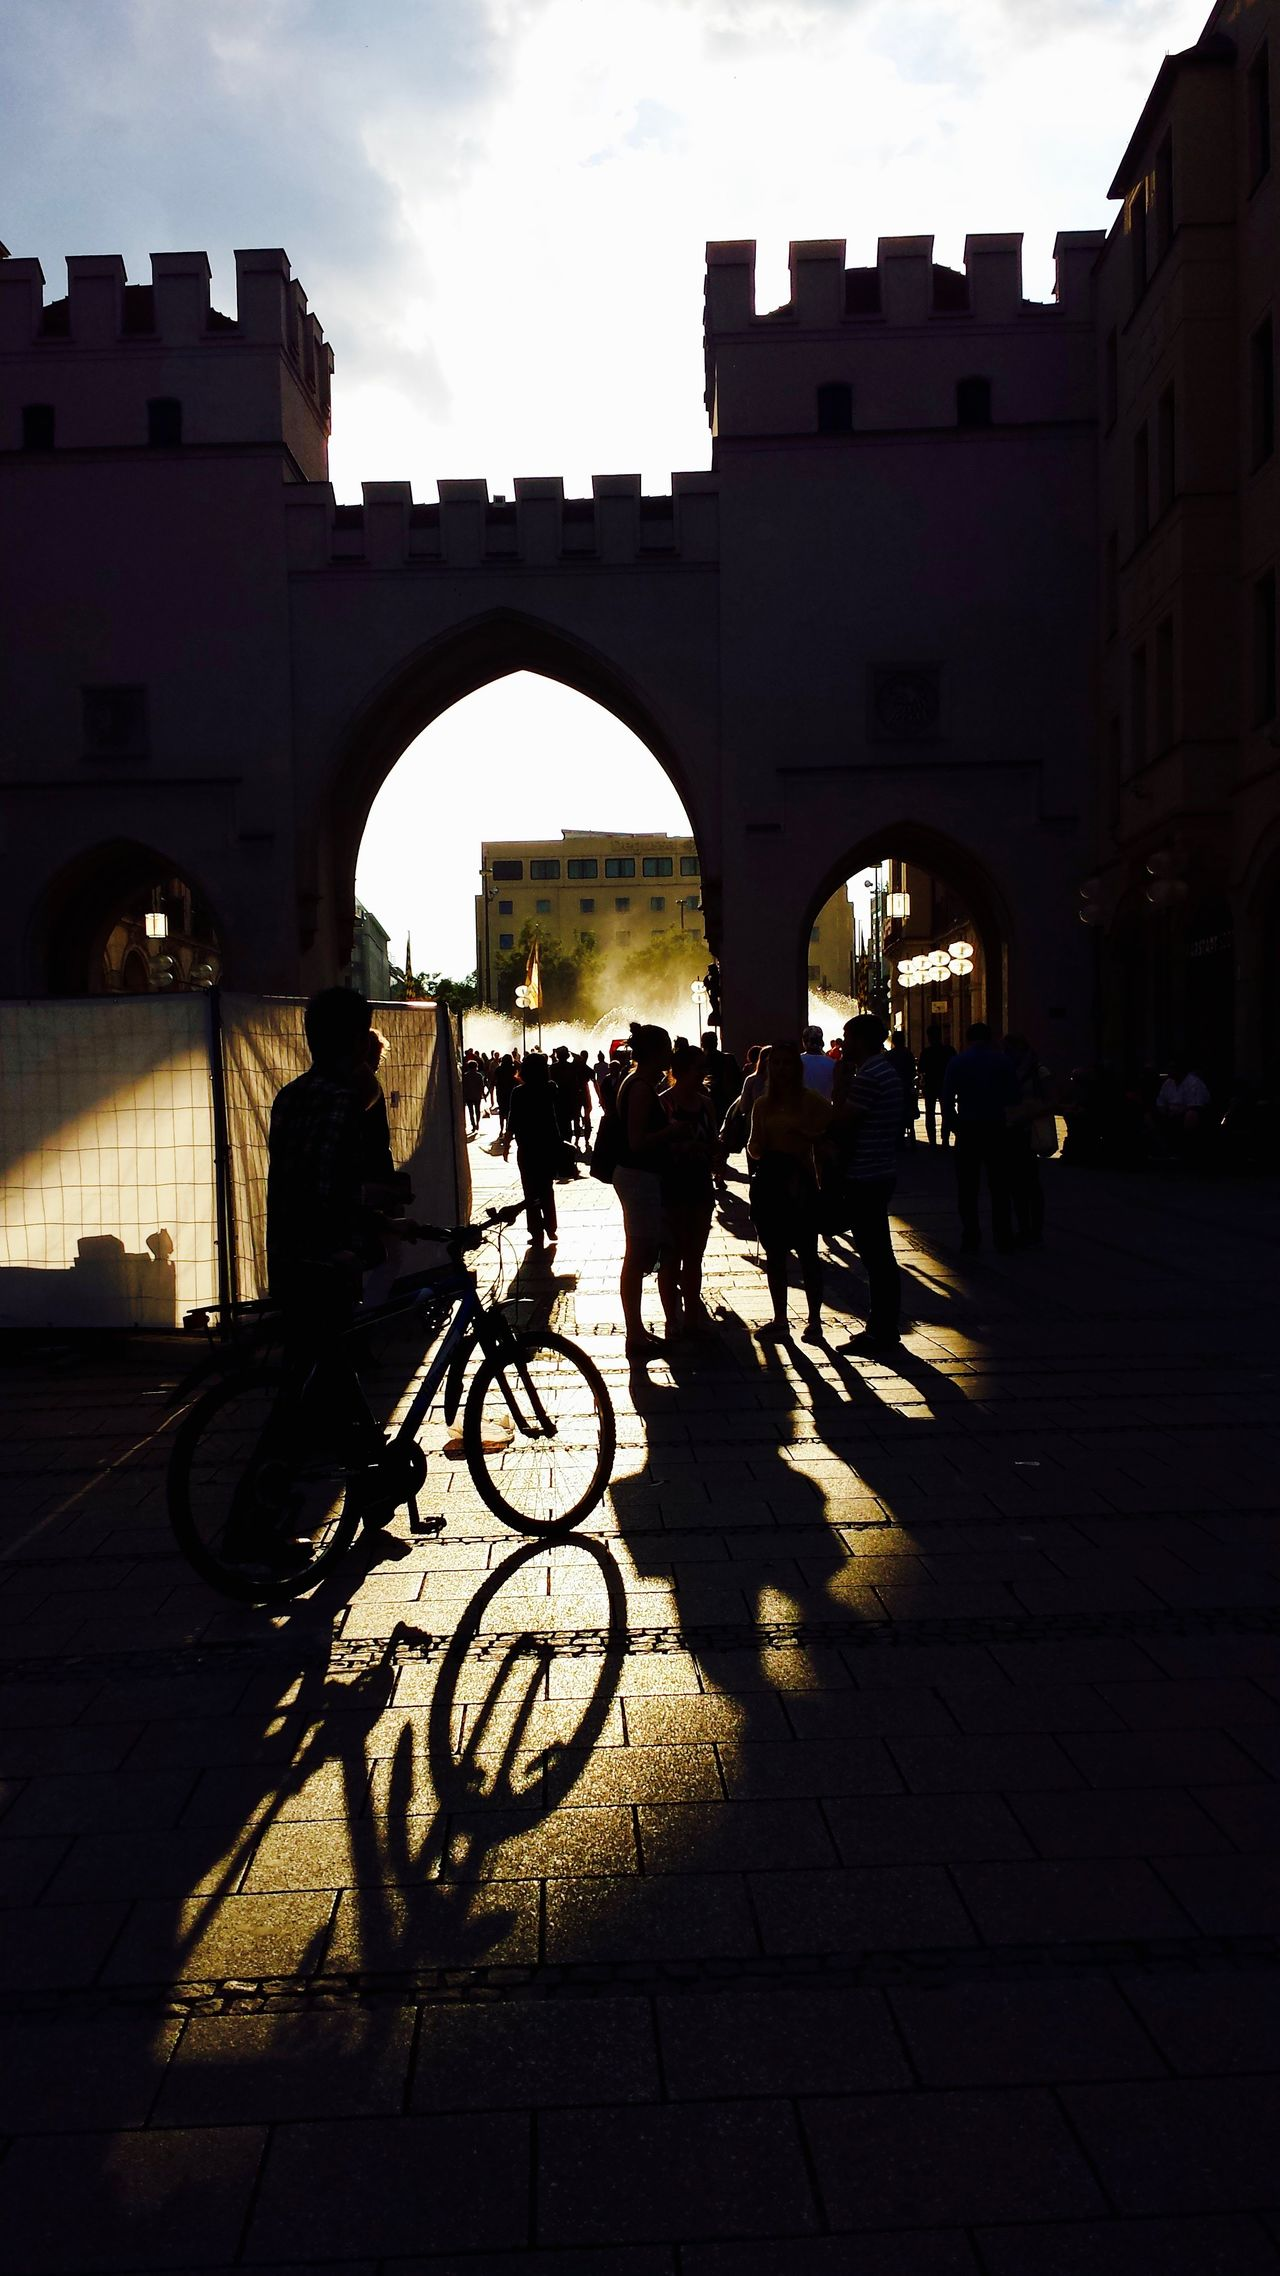 Amazing Memories Arch Architecture Bicycle Bycicle Photography City City Life Deutschland Deutschland Ist Schön Deutschland_greatshots EyeEm Best Shots G Germany 2014 Love The Little Things Munich Architecture Munich, Germany München Deutschland München Memories München,Germany S Shadow Silhouette Sun Set Collection Sunset Silhouettes Transportation